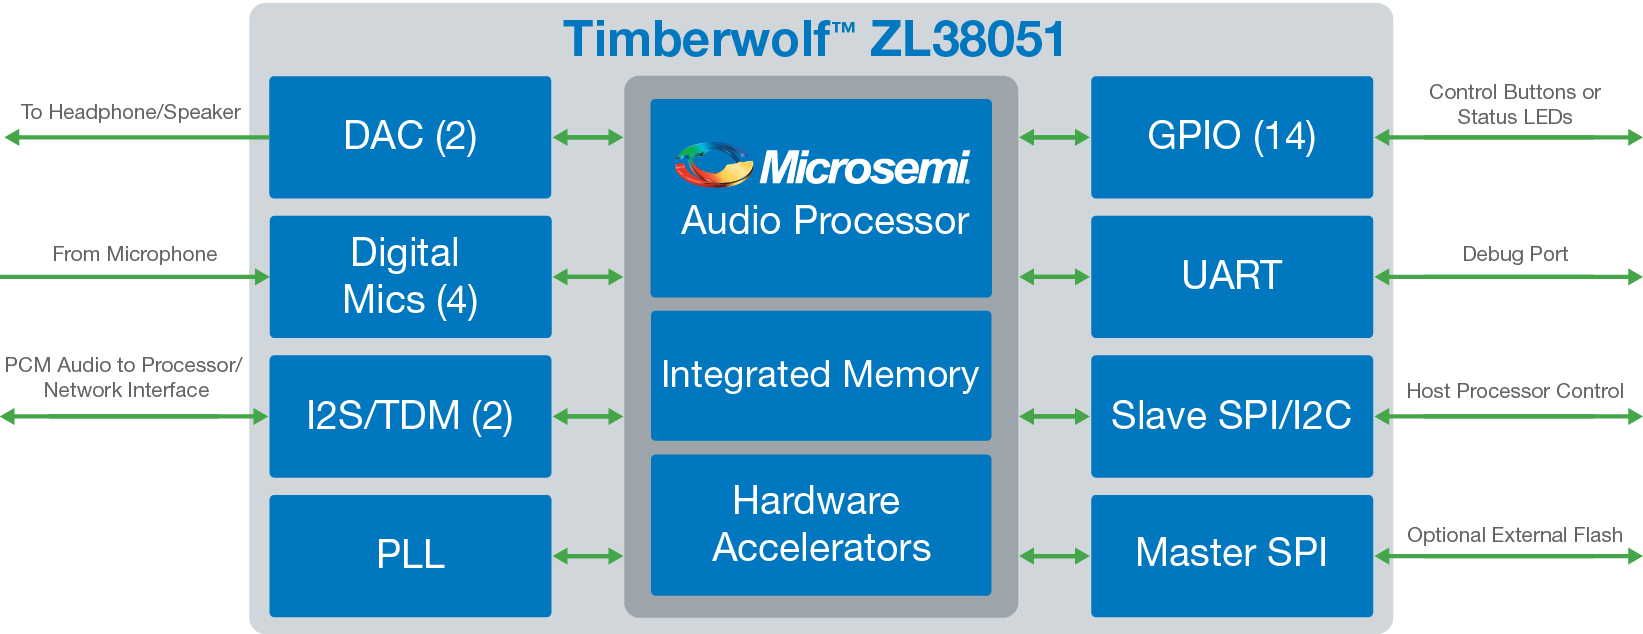 Zl38051 Microsemi Audio Circuit With Voice Over Capability Typical Applications Ip Camera Hd 2 Way